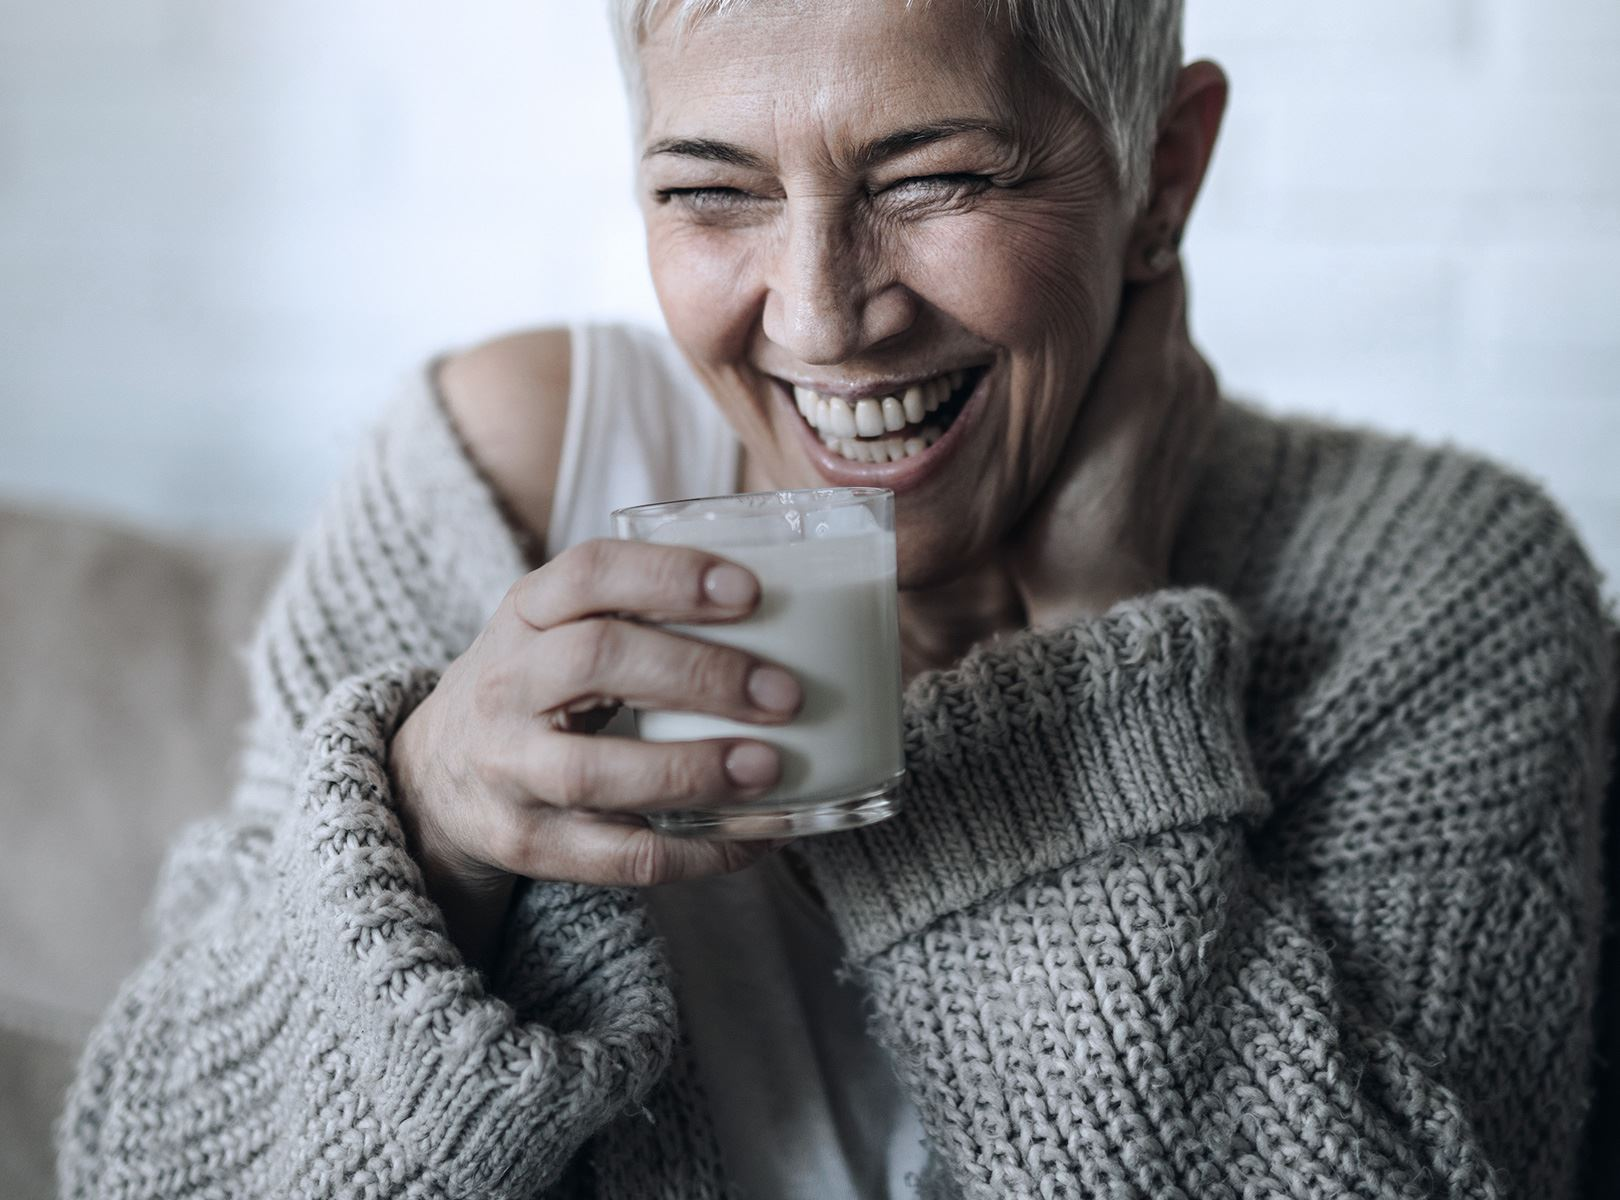 A woman laughing with a glass of milk in her hand